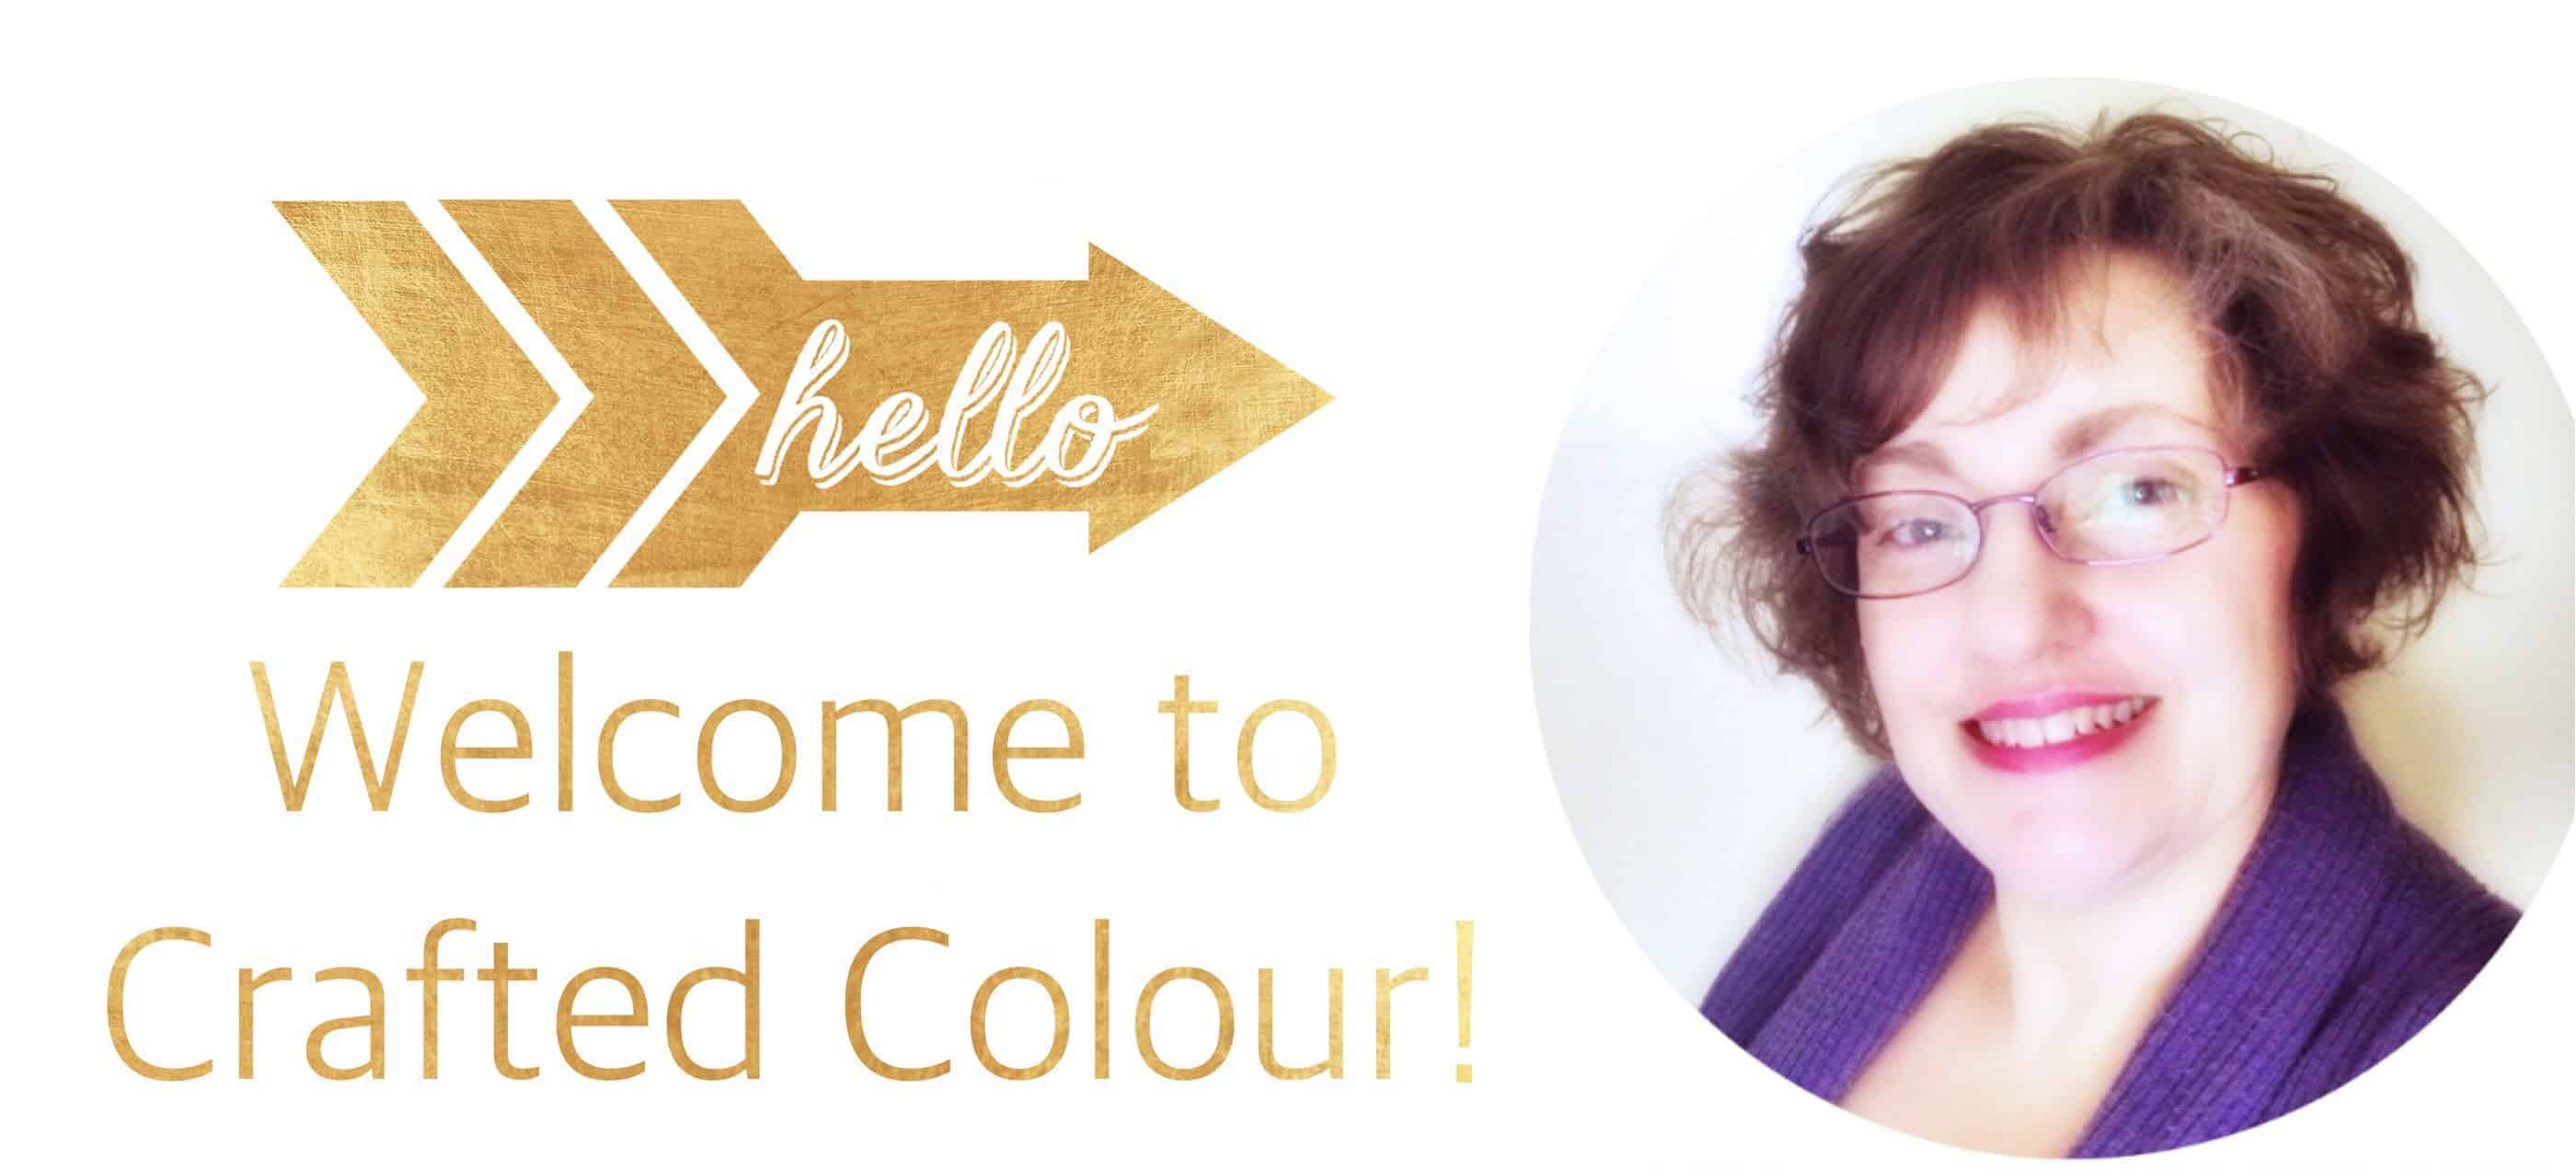 Welcome to Crafted Colour